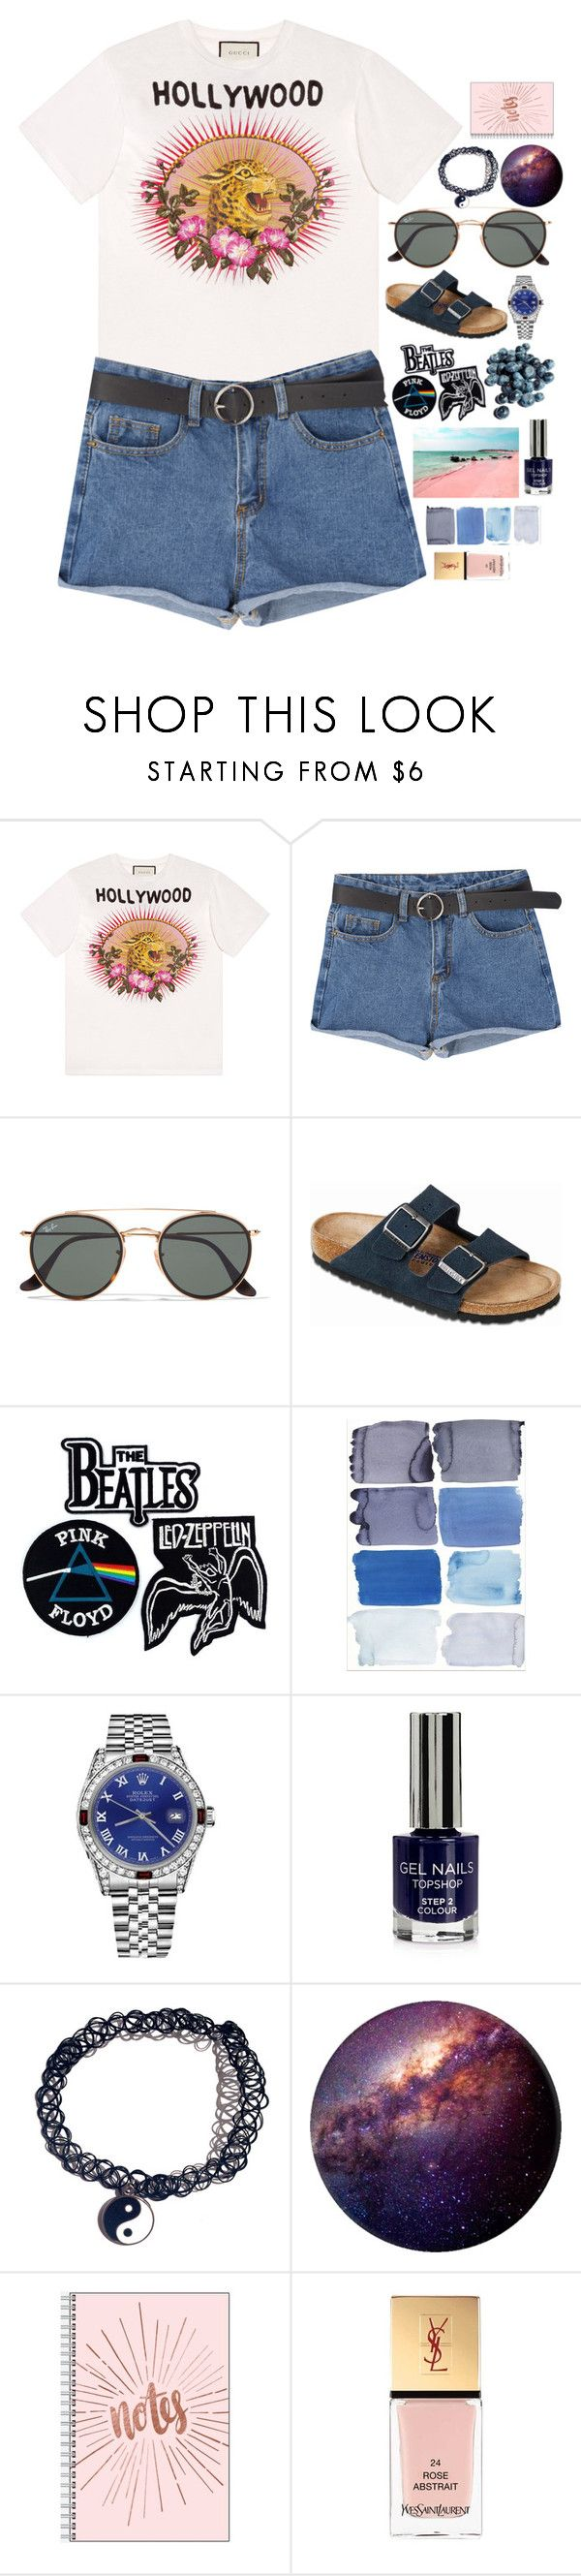 """never let me down again"" by divergirl ❤ liked on Polyvore featuring Gucci, Ray-Ban, Birkenstock, Floyd, Rolex, Topshop and Yves Saint Laurent"